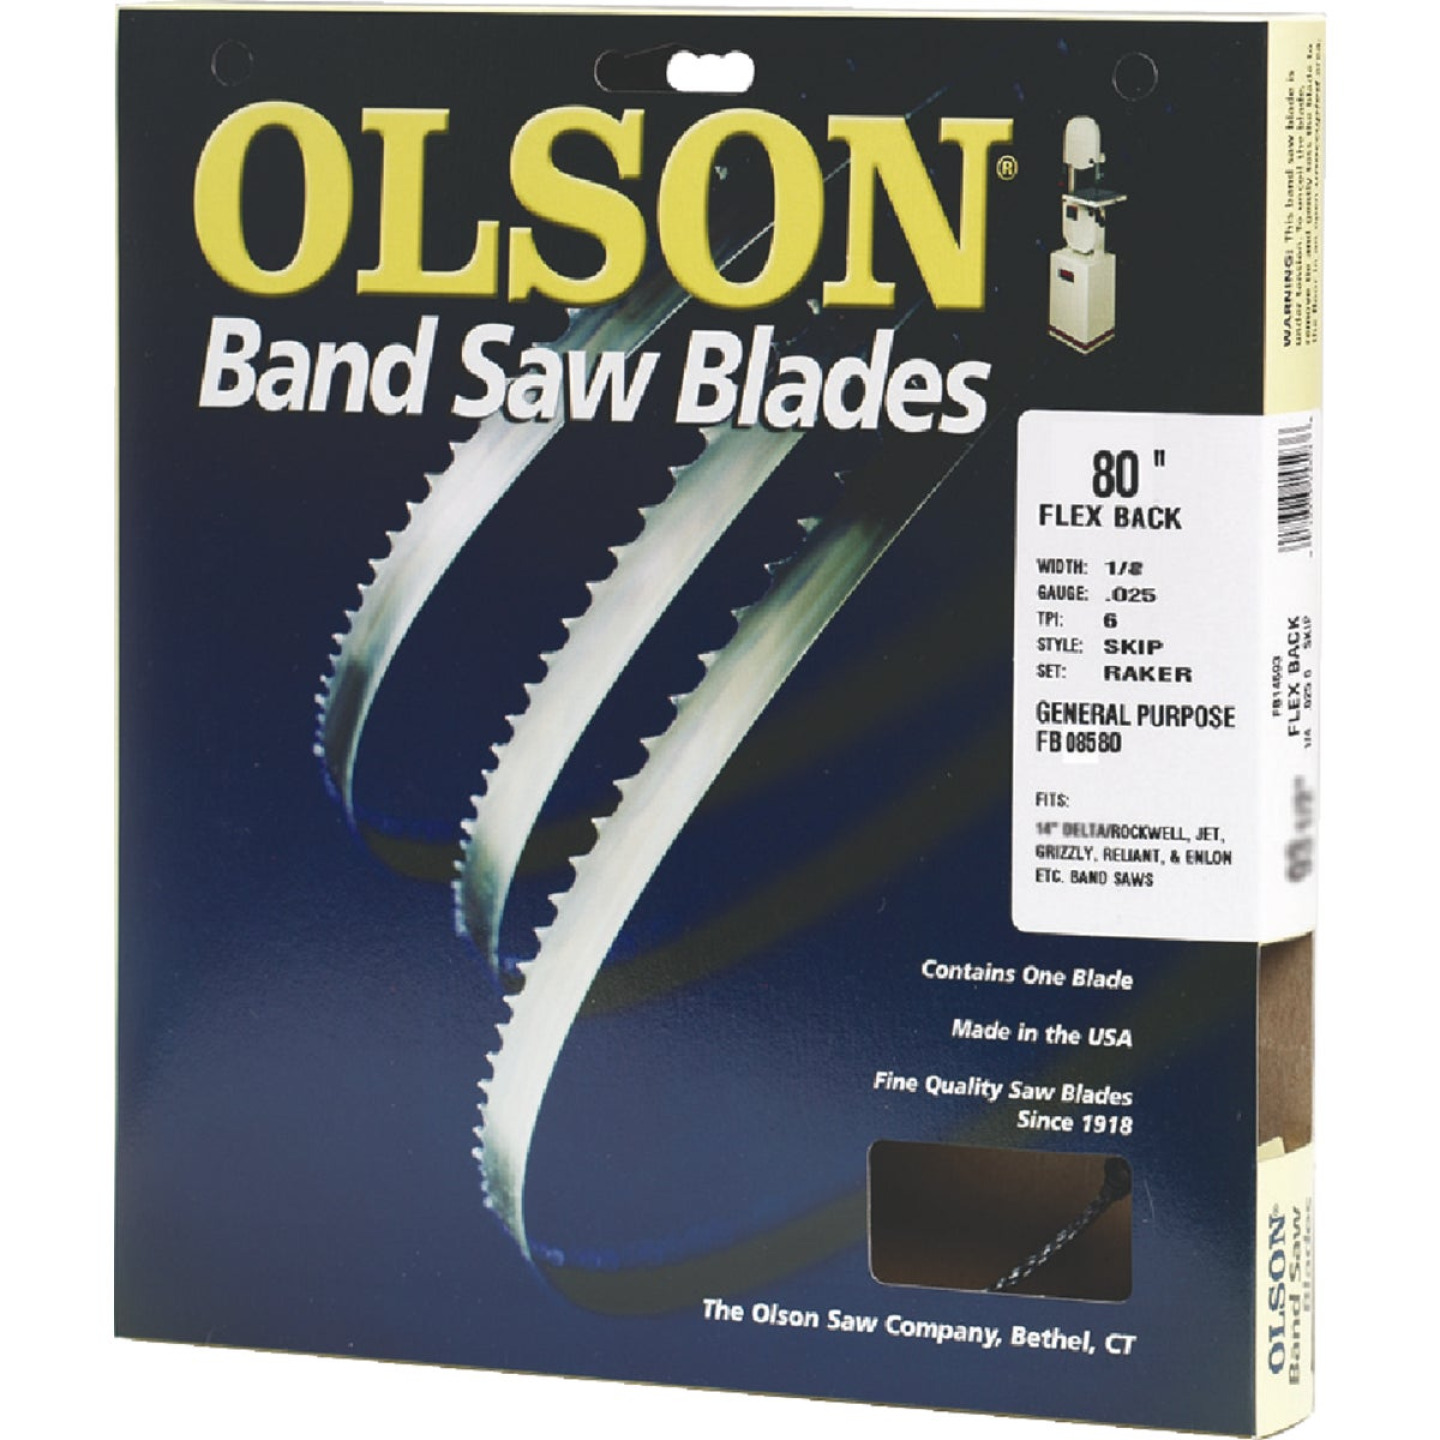 Olson 80 In. x 1/8 In. 14 TPI Regular Flex Back Band Saw Blade Image 1